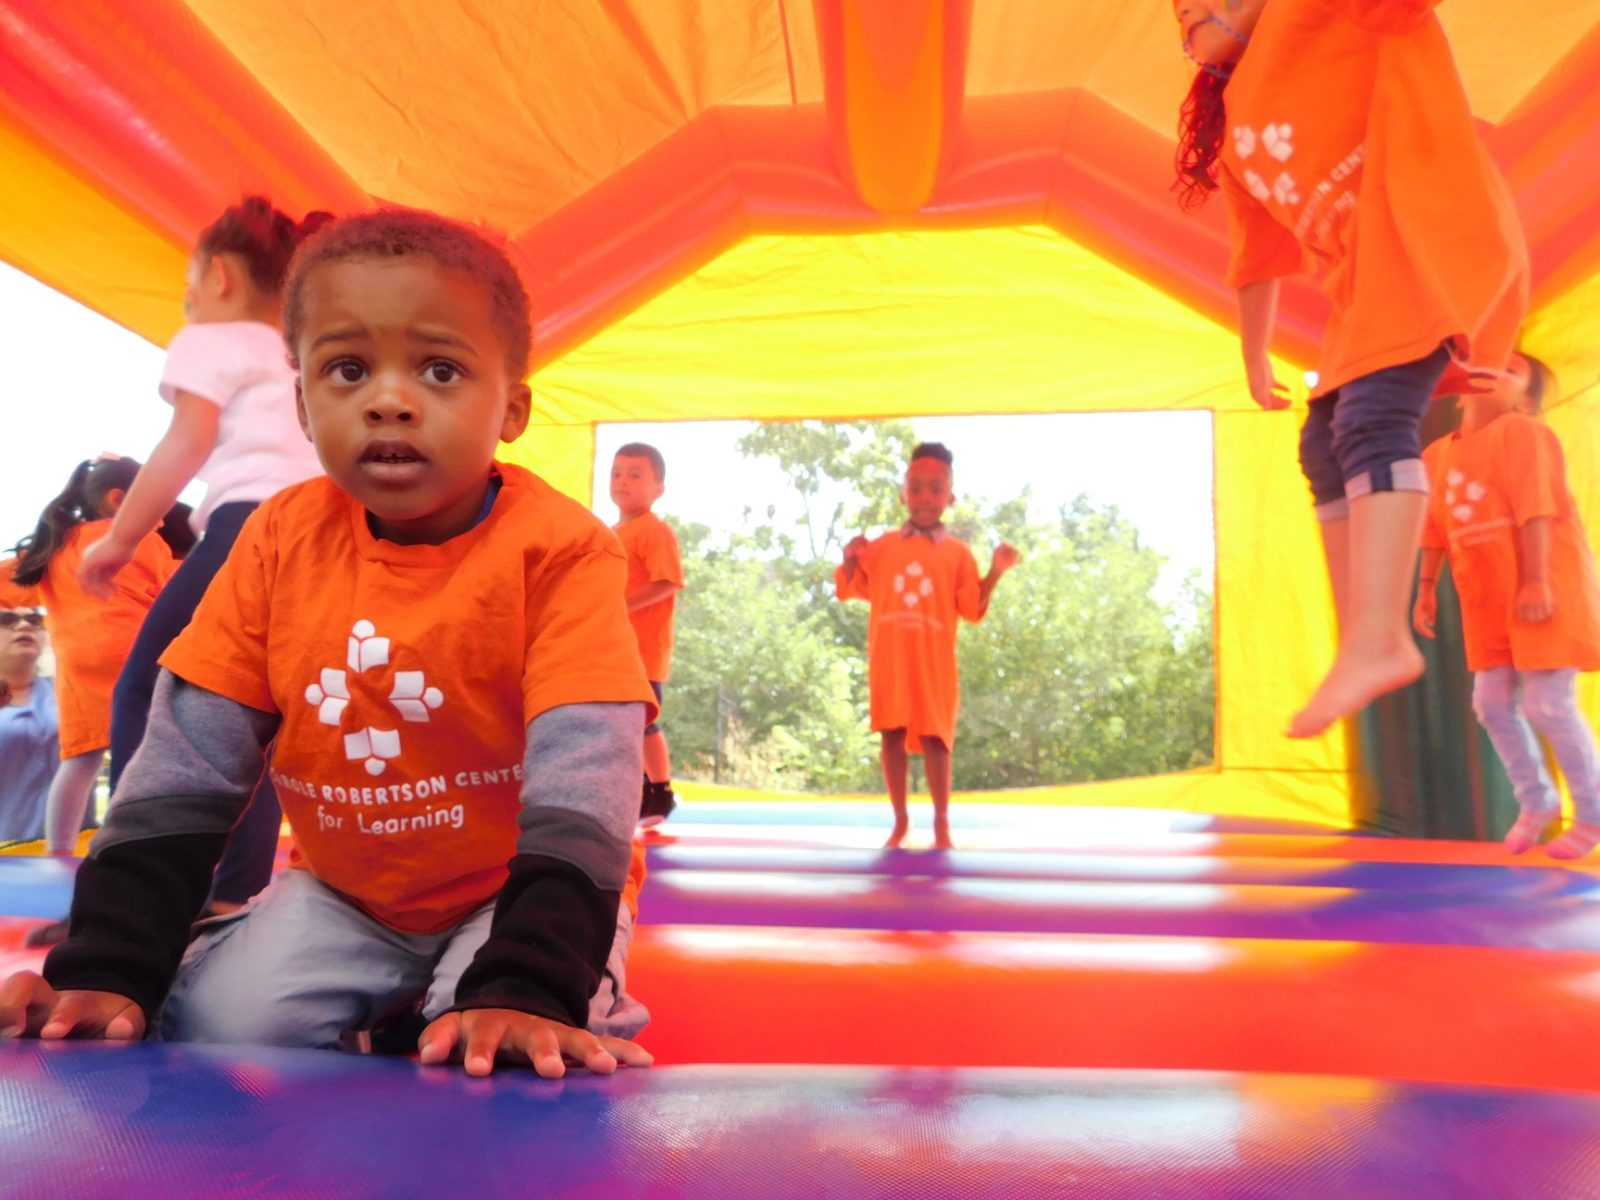 Carole Robertson Center for Learning Awarded $20 million Federal Grant, five-year award from Administration of Children and Families